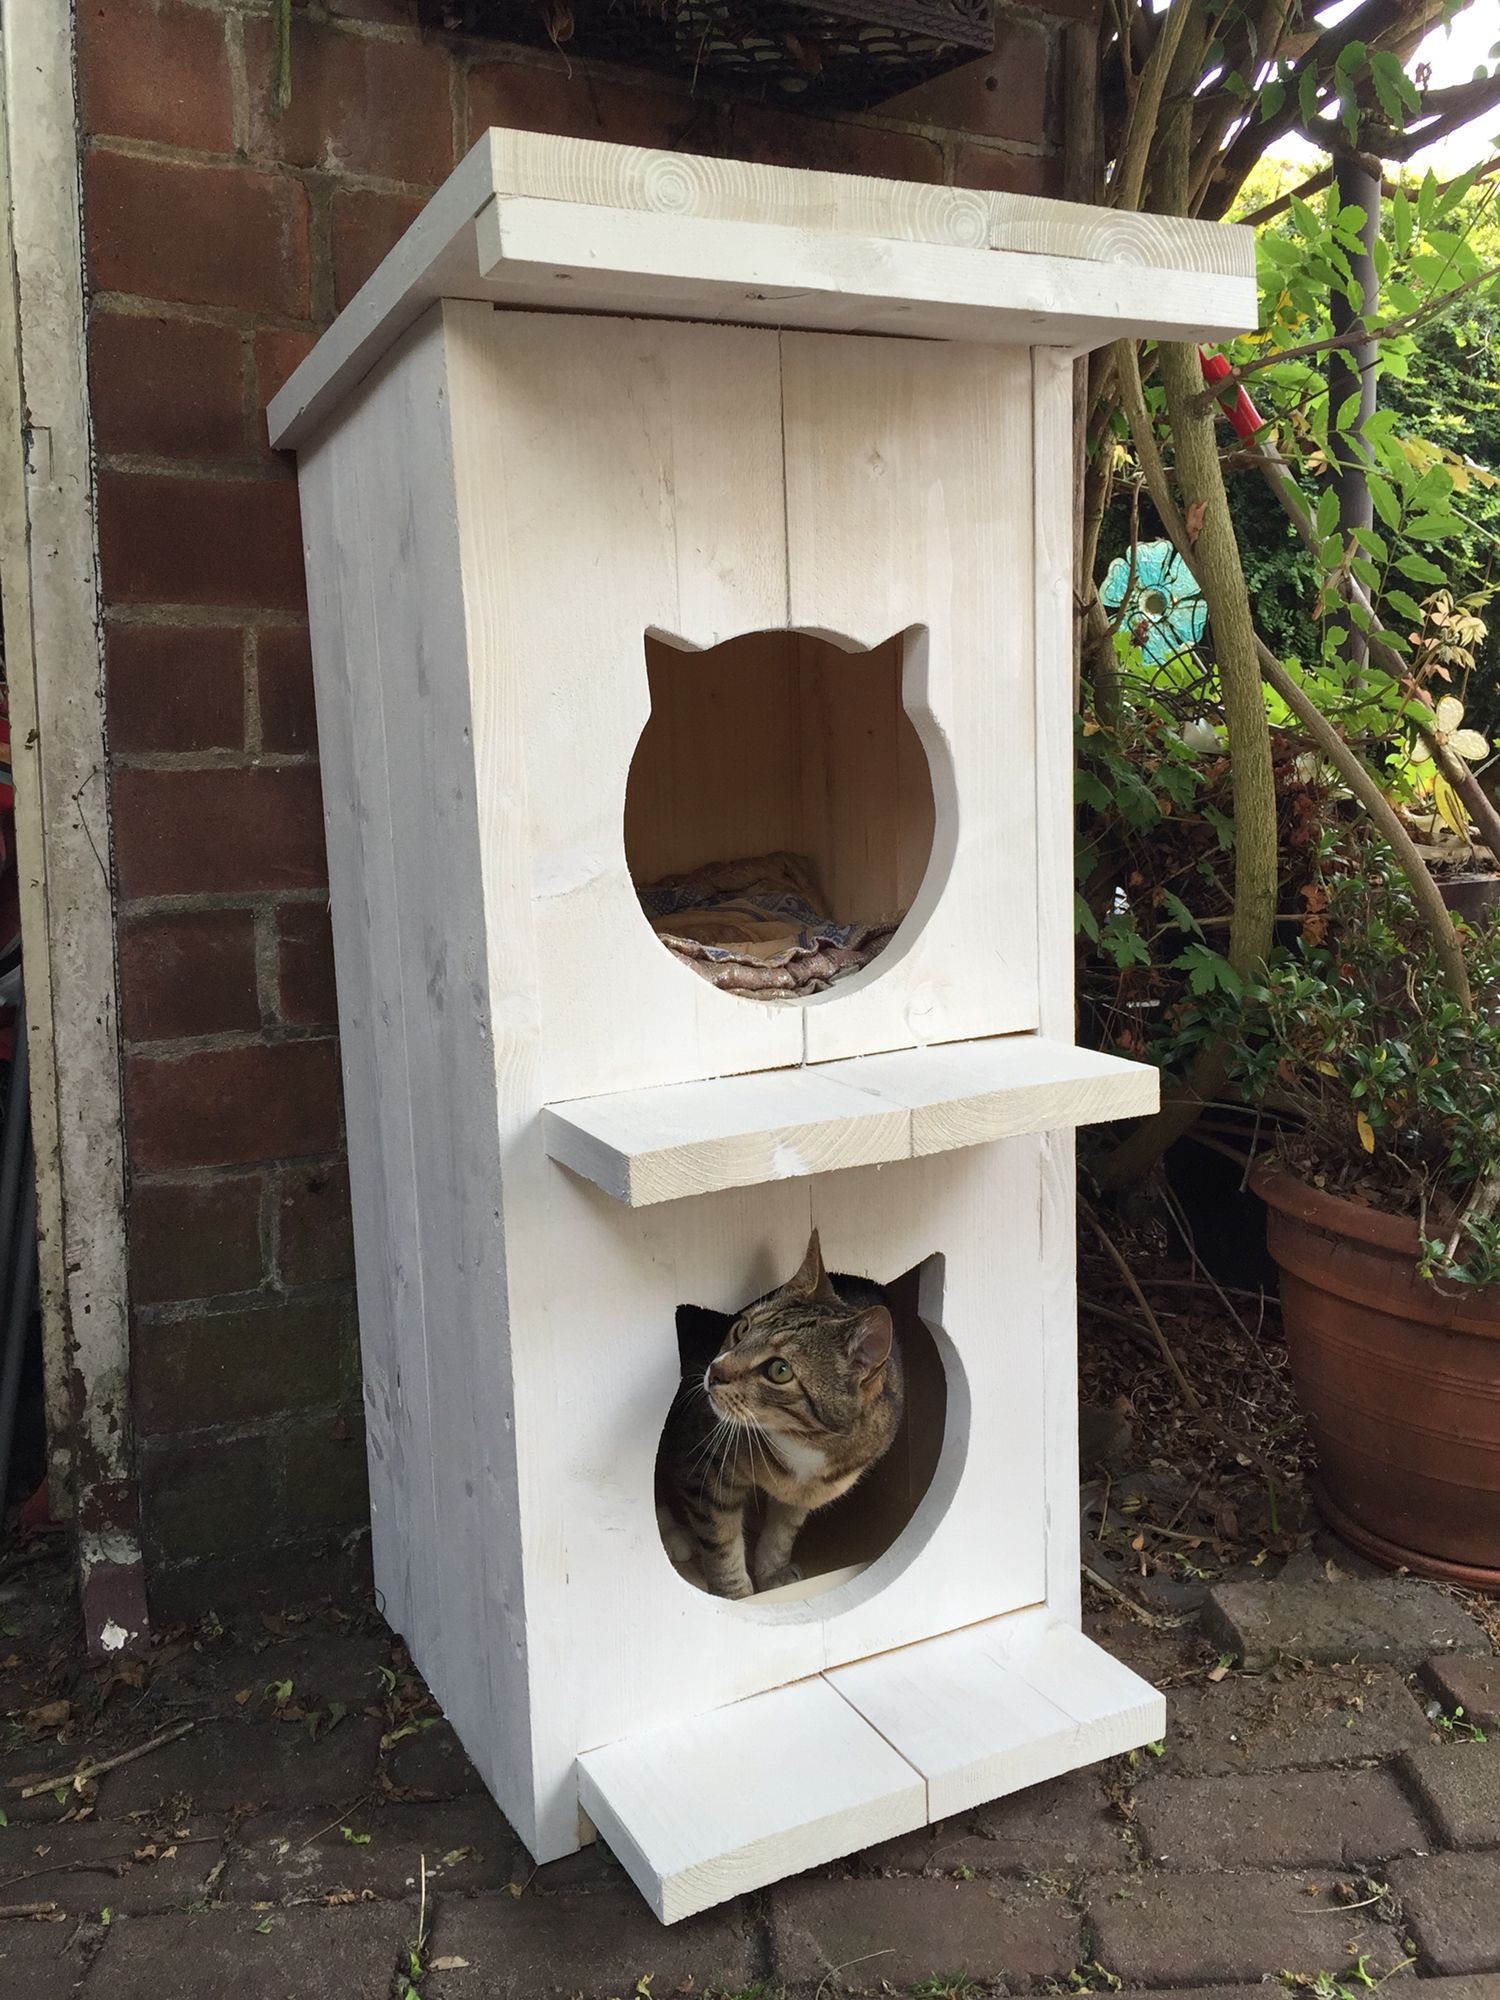 Superleuk Tuinhuis Voor De Katten Van Steigerhout Sloophout Gemaakt Door Atelier Klinkhamer In Maarssenbroe Outdoor Cat House Outside Cat House Cat House Diy